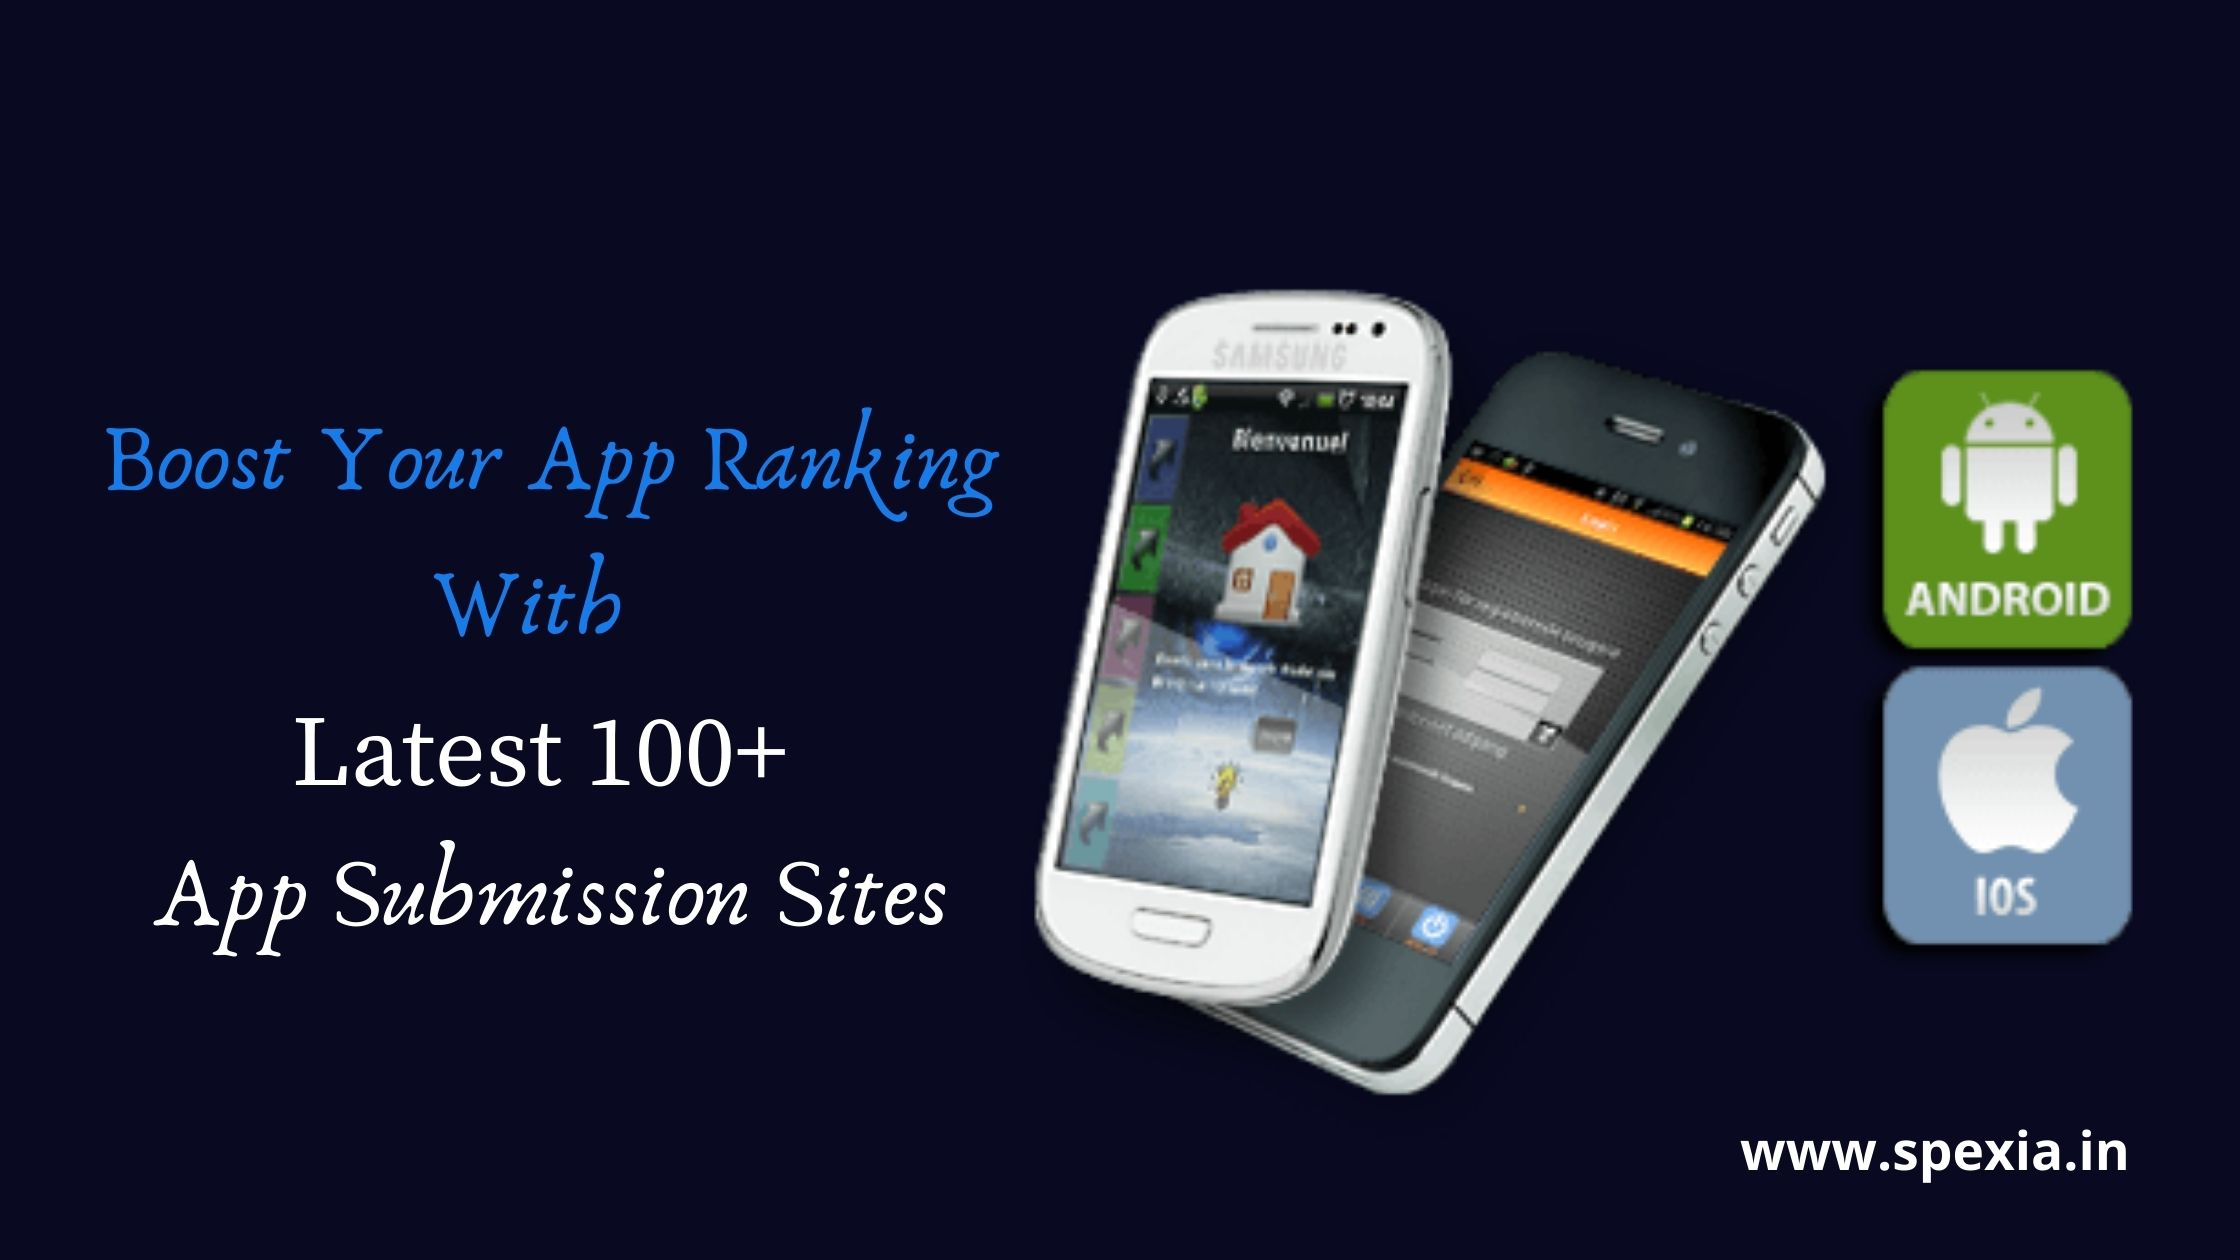 Latest 100+ App Submission Sites With DA/PA Score To Boost Your App Ranking